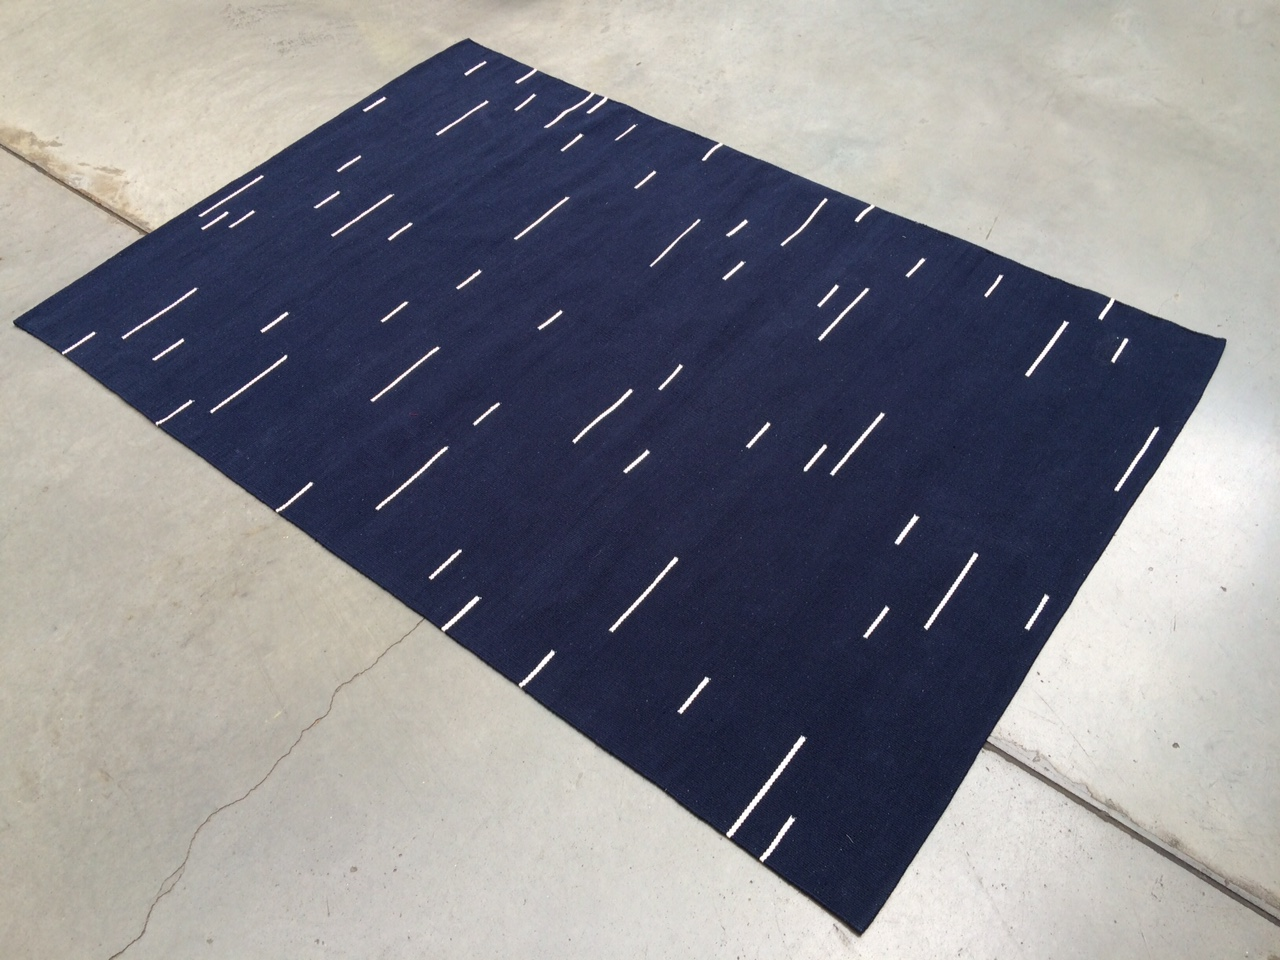 Jama-khan rug in blue - 120 x 180 cms 100% handwoven cotton